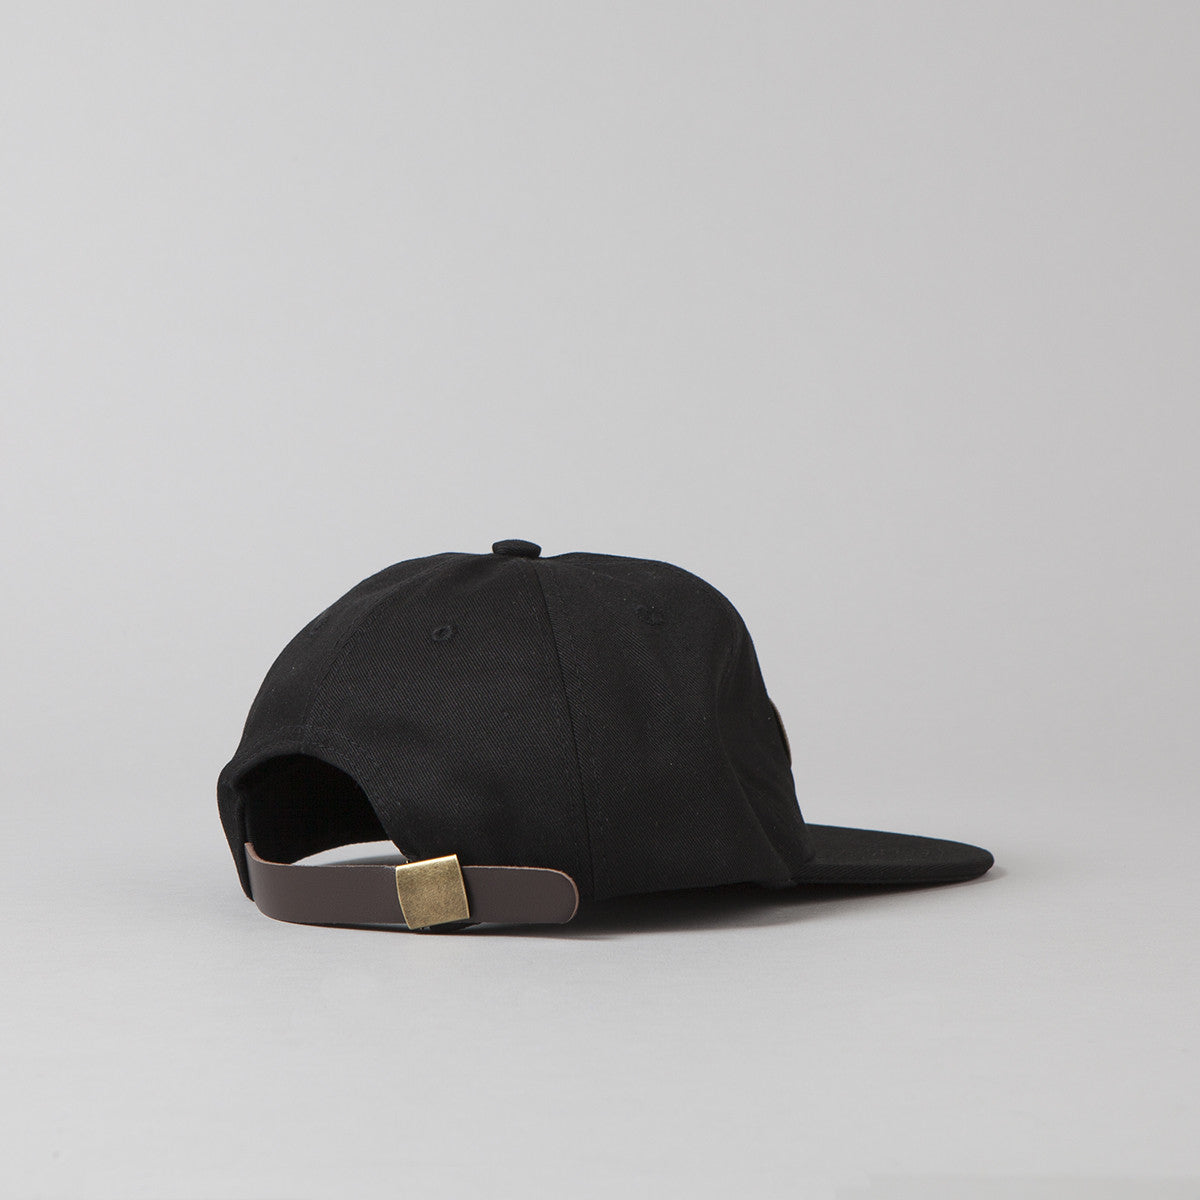 Pass Port Friendly Company Cap - Black